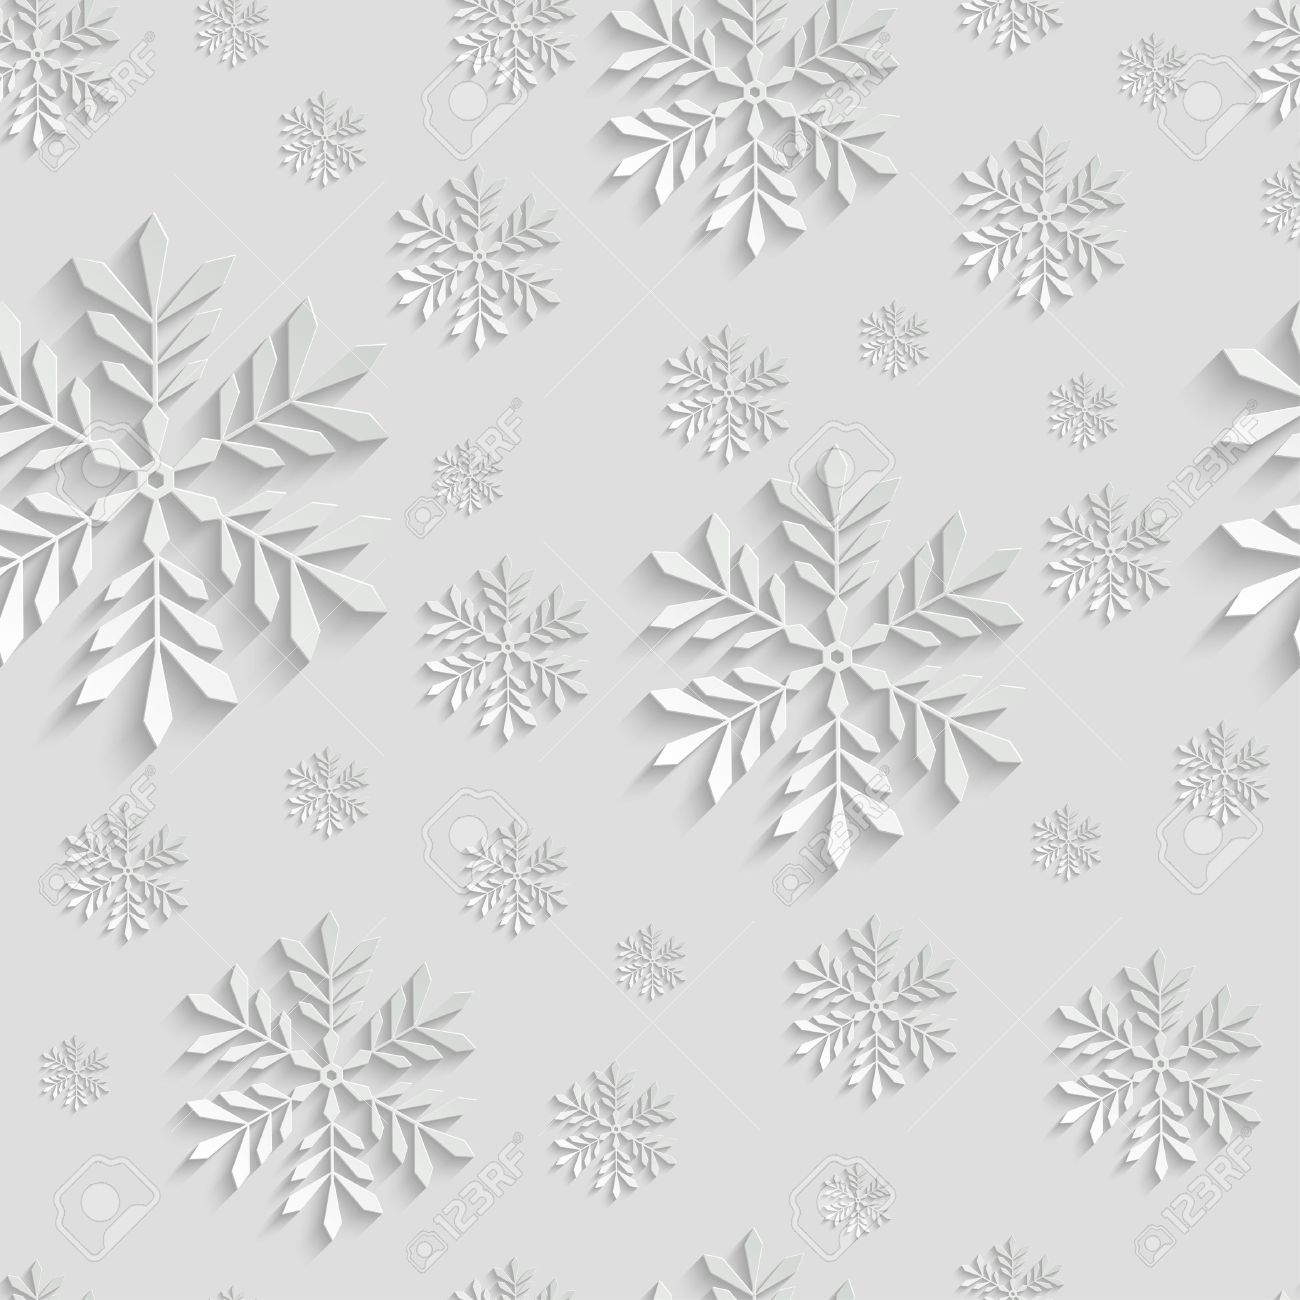 abstract d christmas background with snowflakes vector seamless, invitation samples